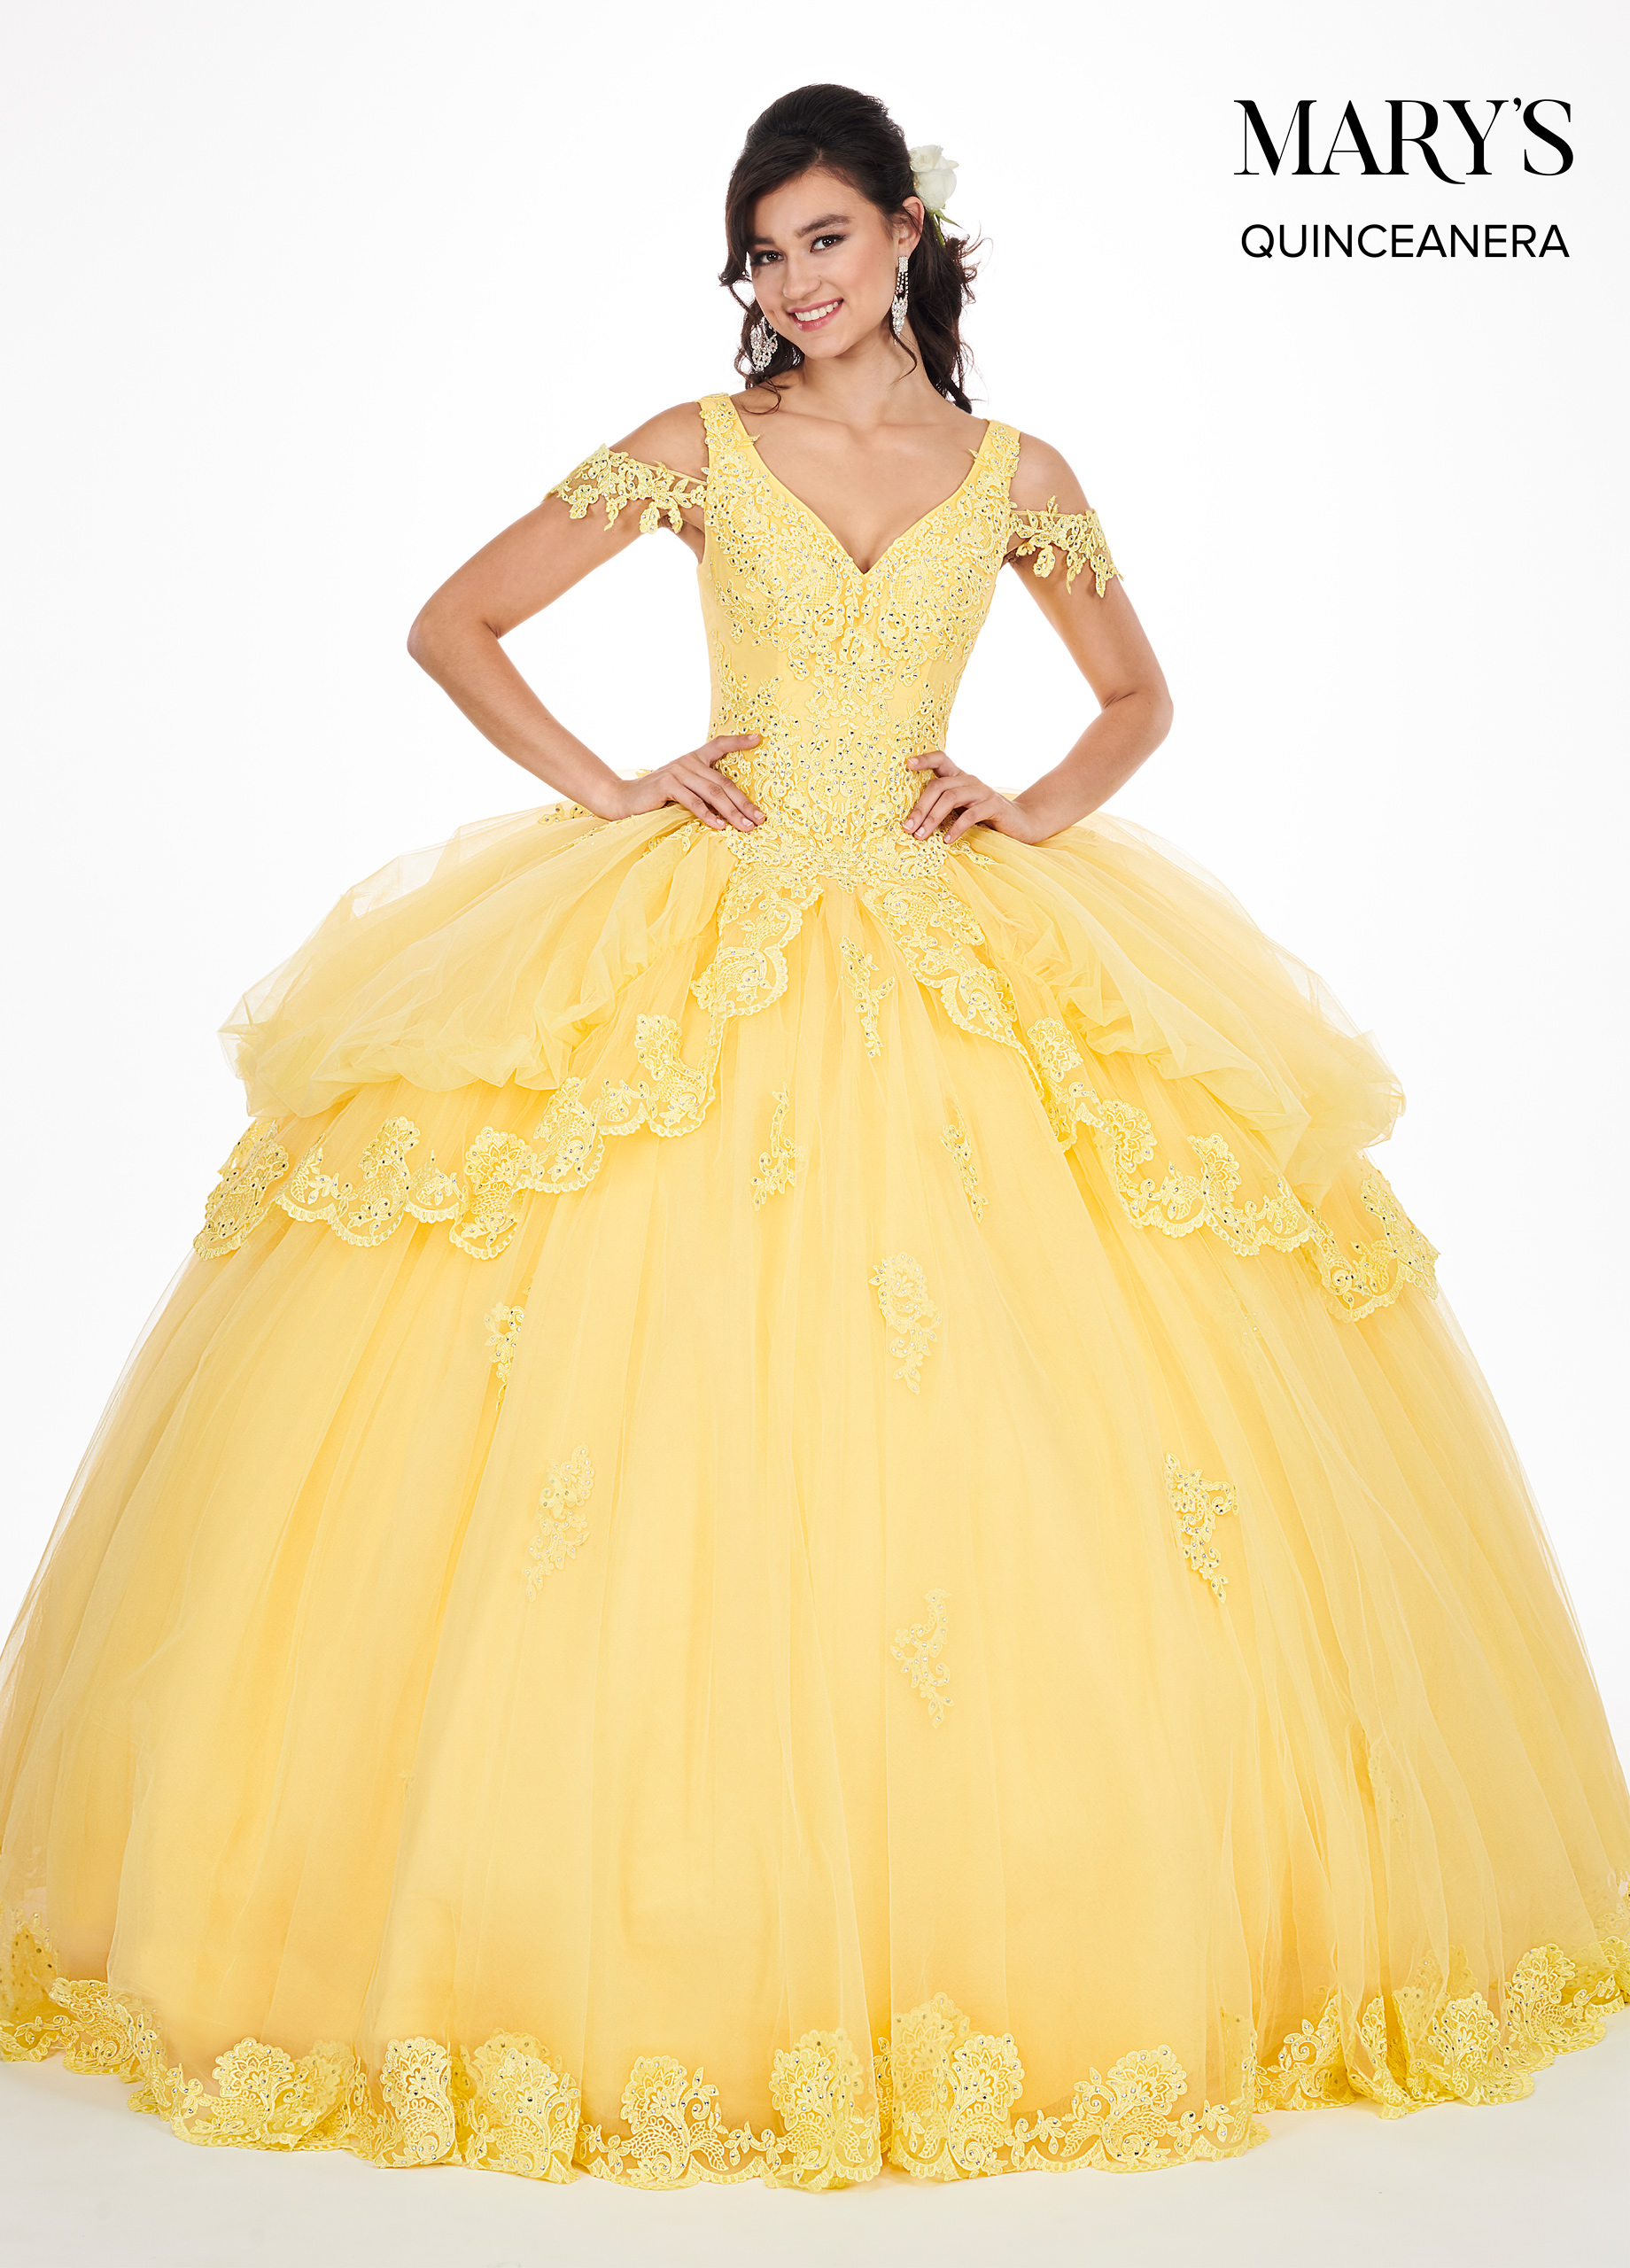 Marys Quinceanera Dresses | Mary's Quinceanera | Style - MQ2051